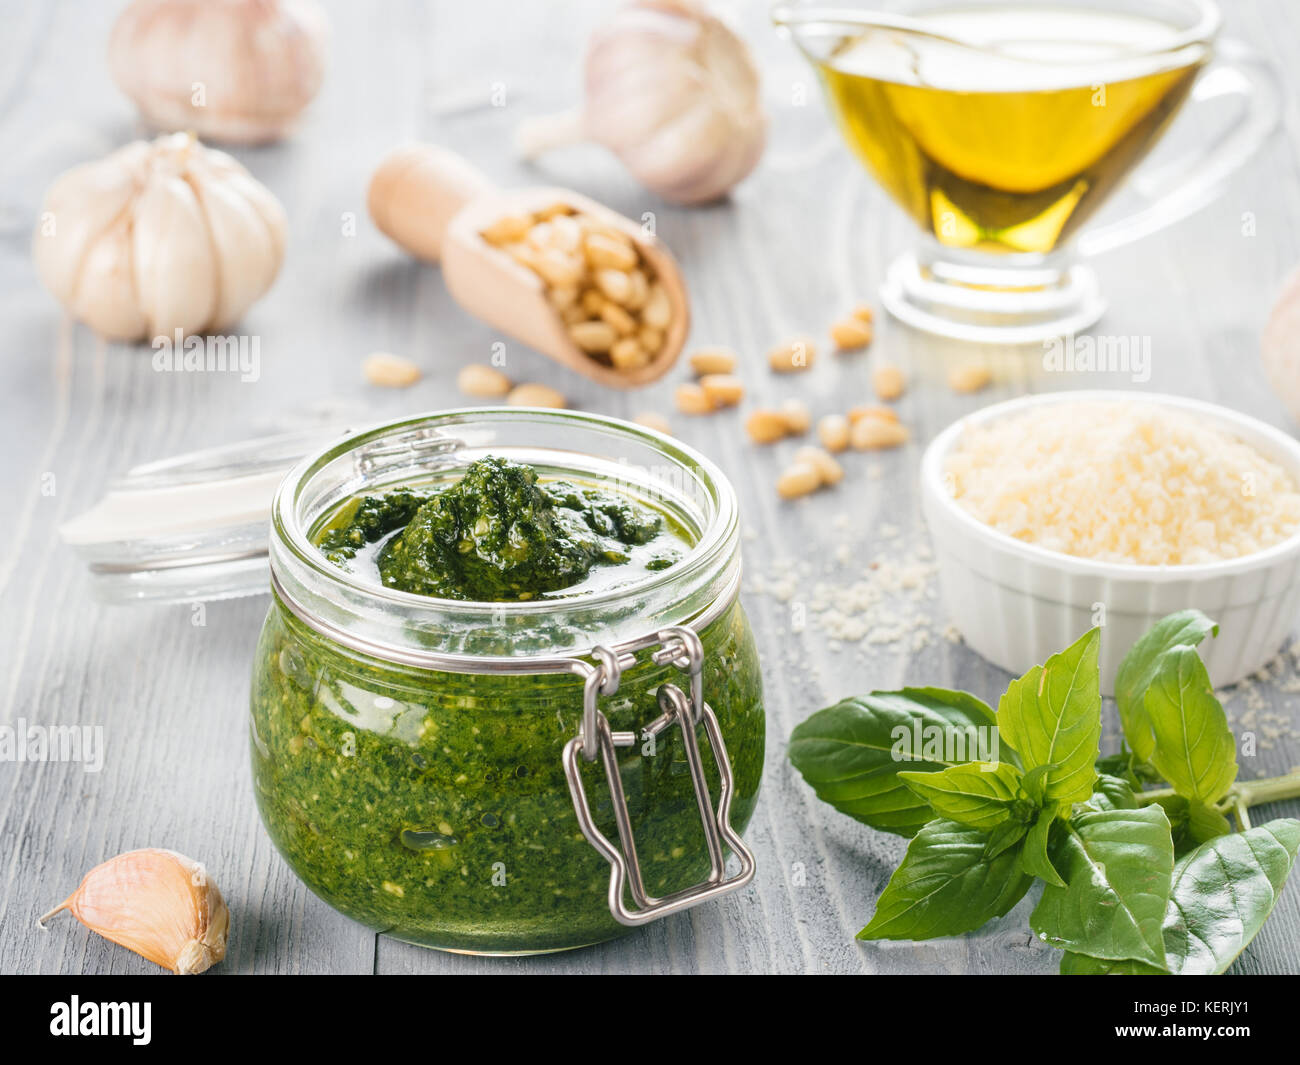 Homemade pesto sauce and ingredients on gray wooden background. Close up wiev of basil pesto in glass jar with ingredients. Stock Photo